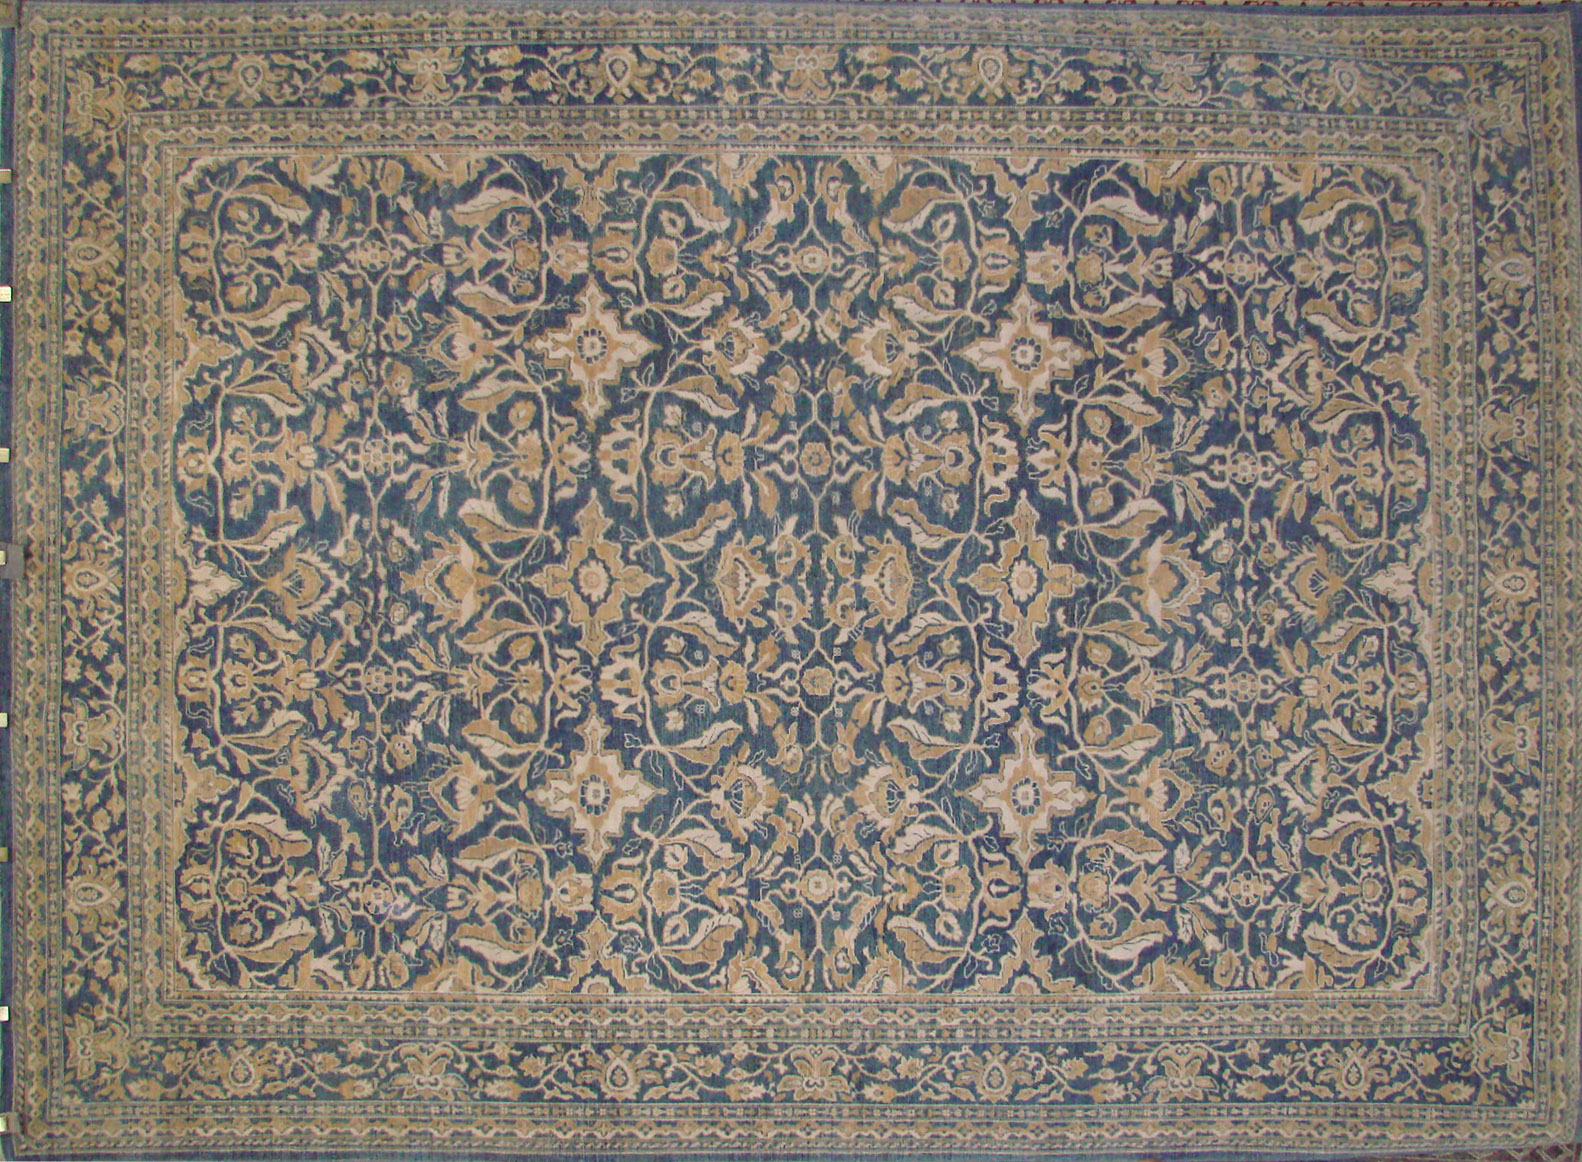 9x12 Peshawar Hand Knotted Wool Area Rug - MR021824